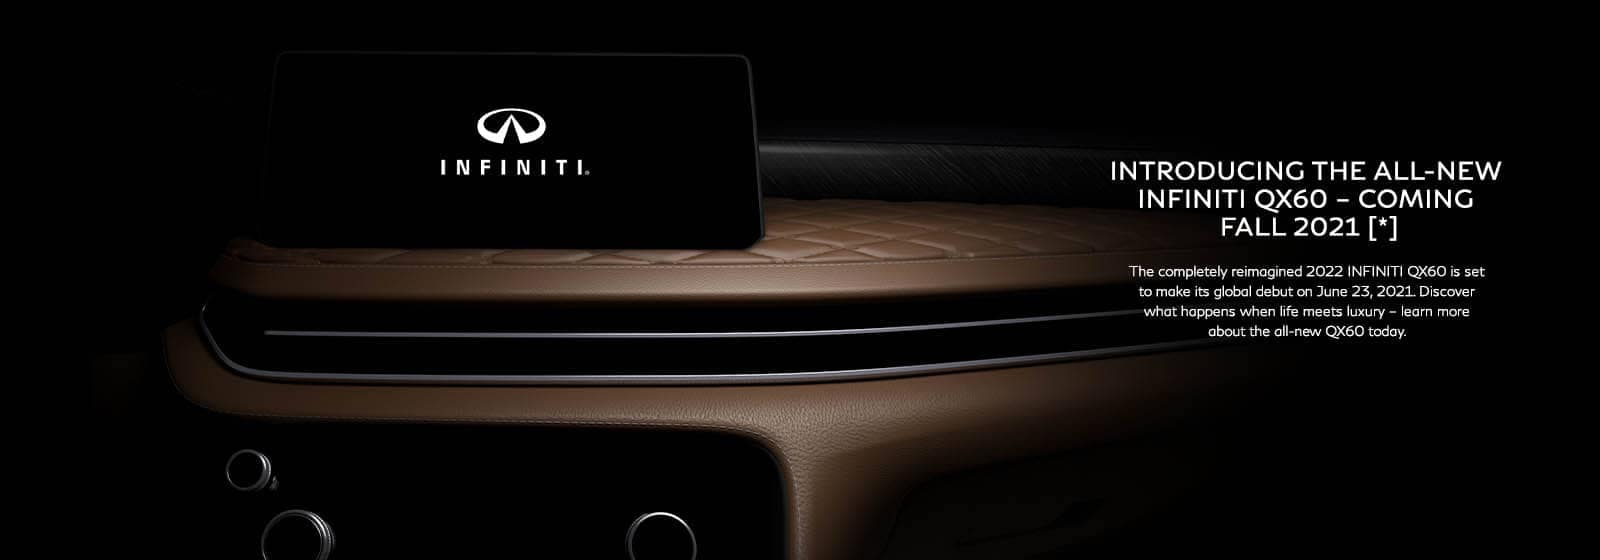 Introducing The All New INFINITI QX60 - Coming Fall 2021 [*] - The completely reimagined 2022 INFINITI QX60 is set to make its global debut on June 23, 2021. Discover what happens when life meets luxury - learn more about the all-new QX60 today.